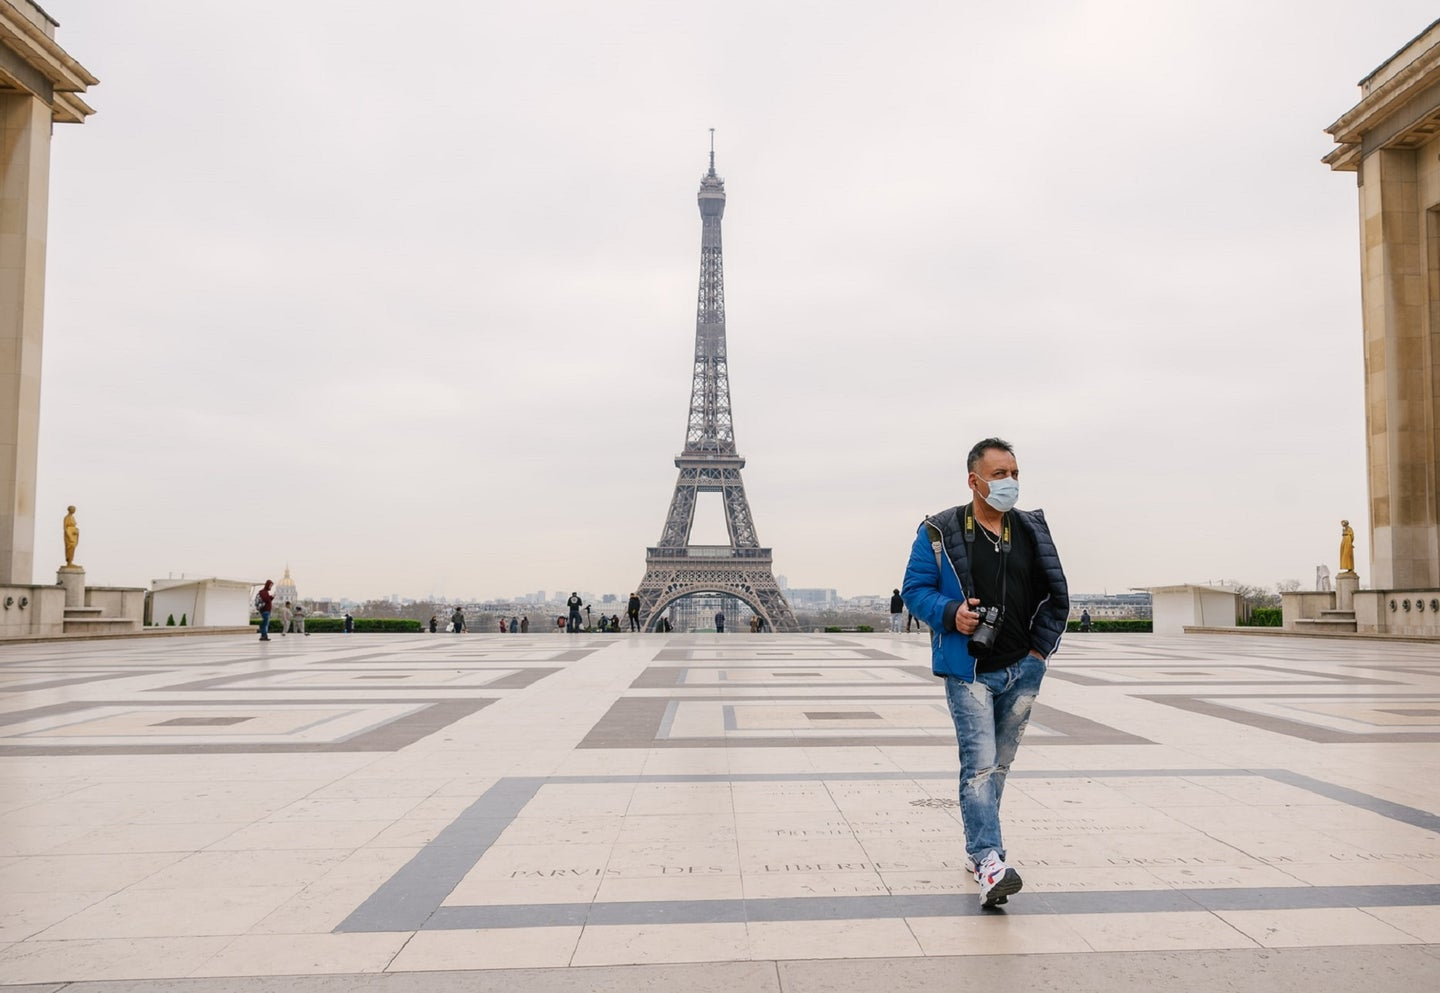 Tourist in surgical mask in front of the Eiffel Tower